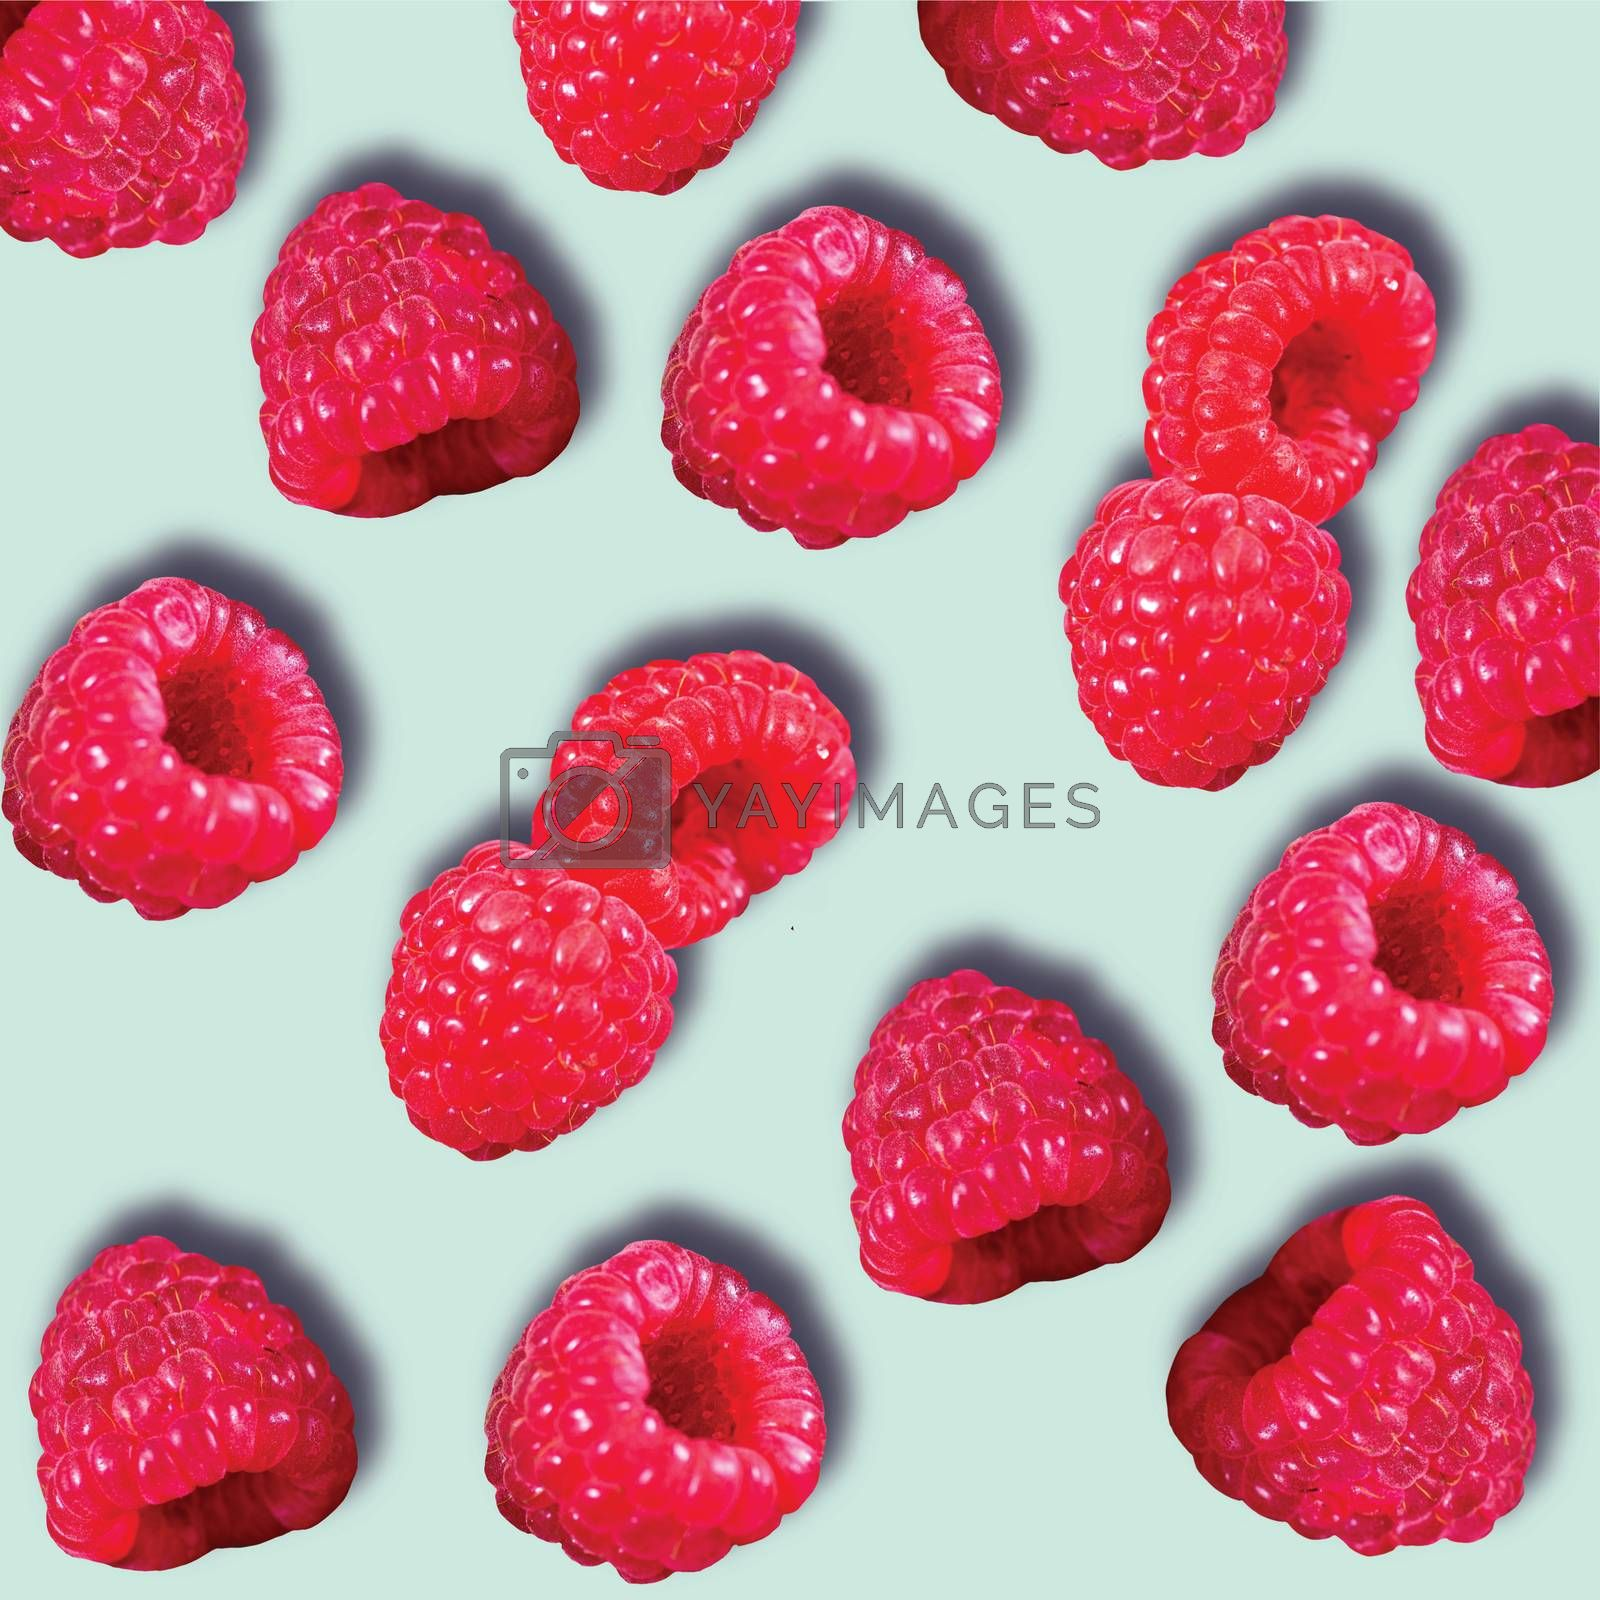 Pattern of Raspberries sweet organic juicy berries on blue background. Flat lay, top view.